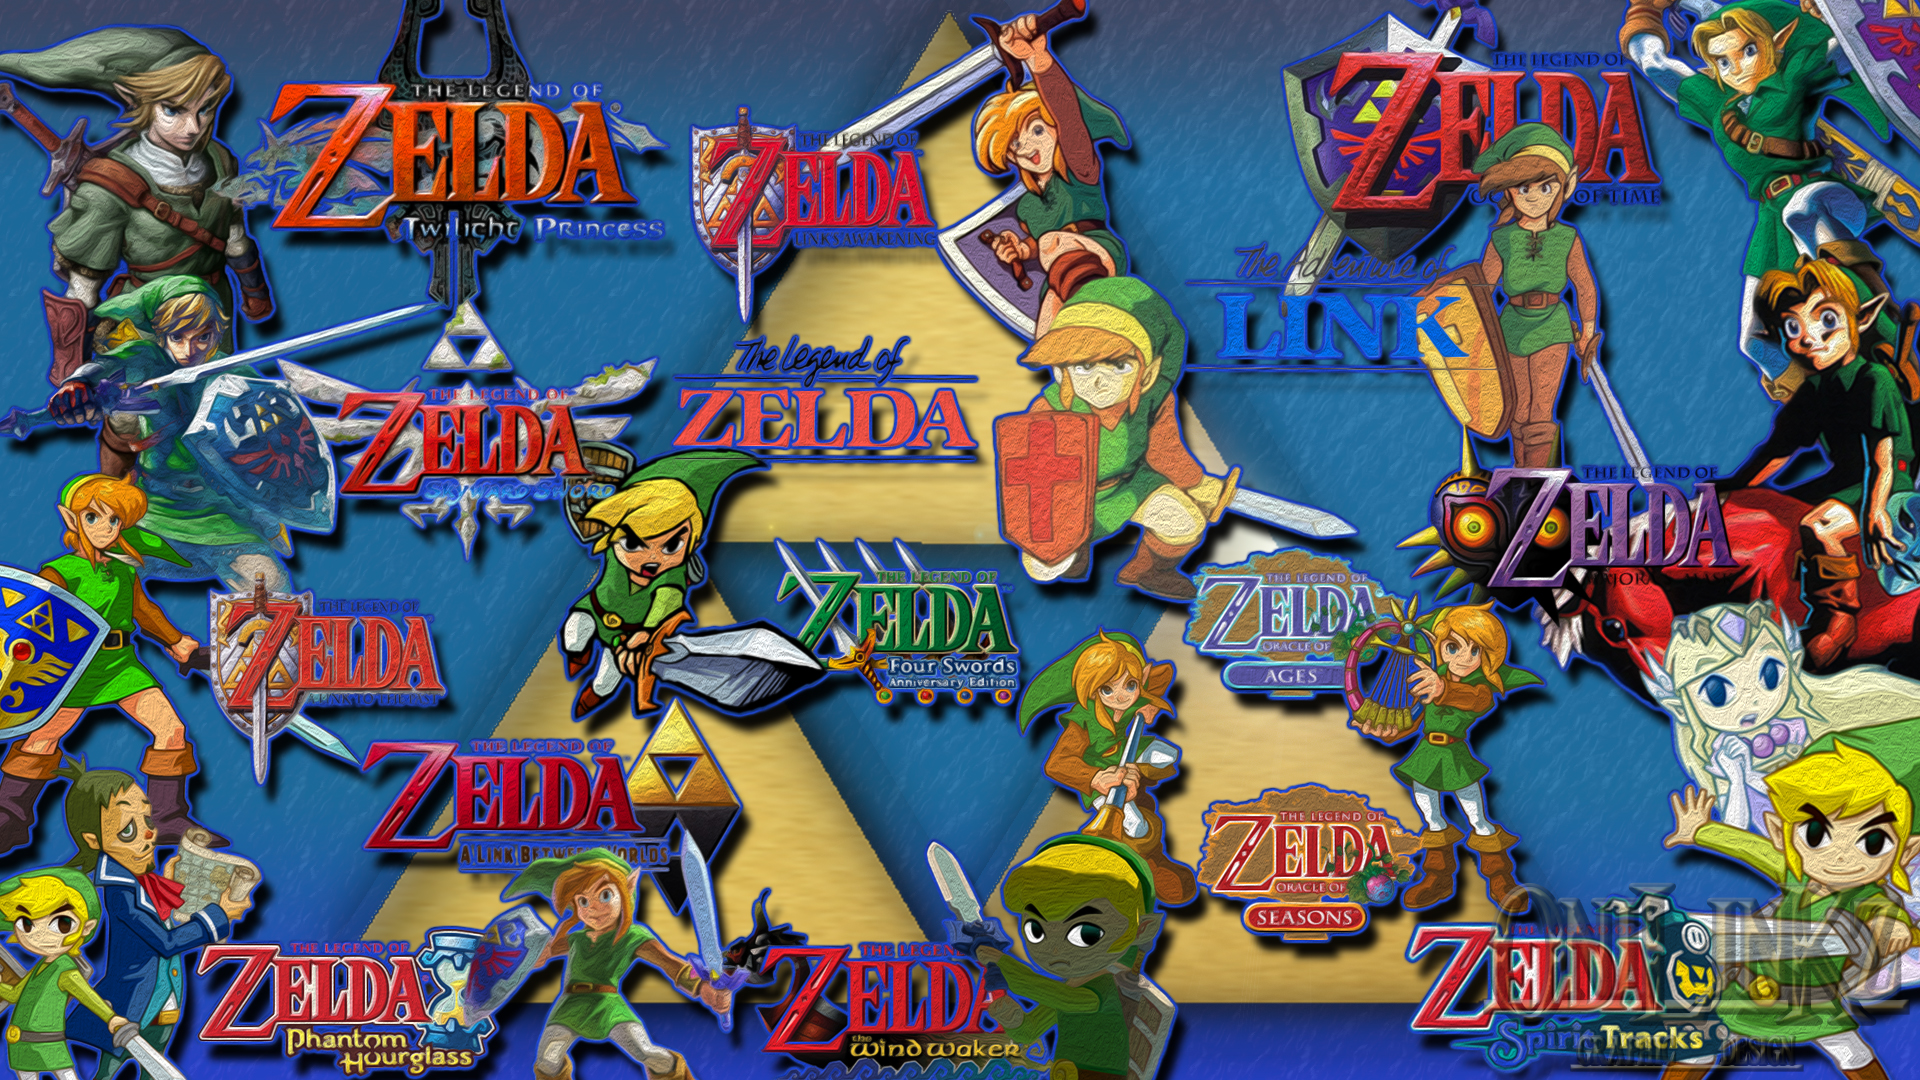 Zelda Wallpaper 1080p Links History By 0nilinkz 1920x1080